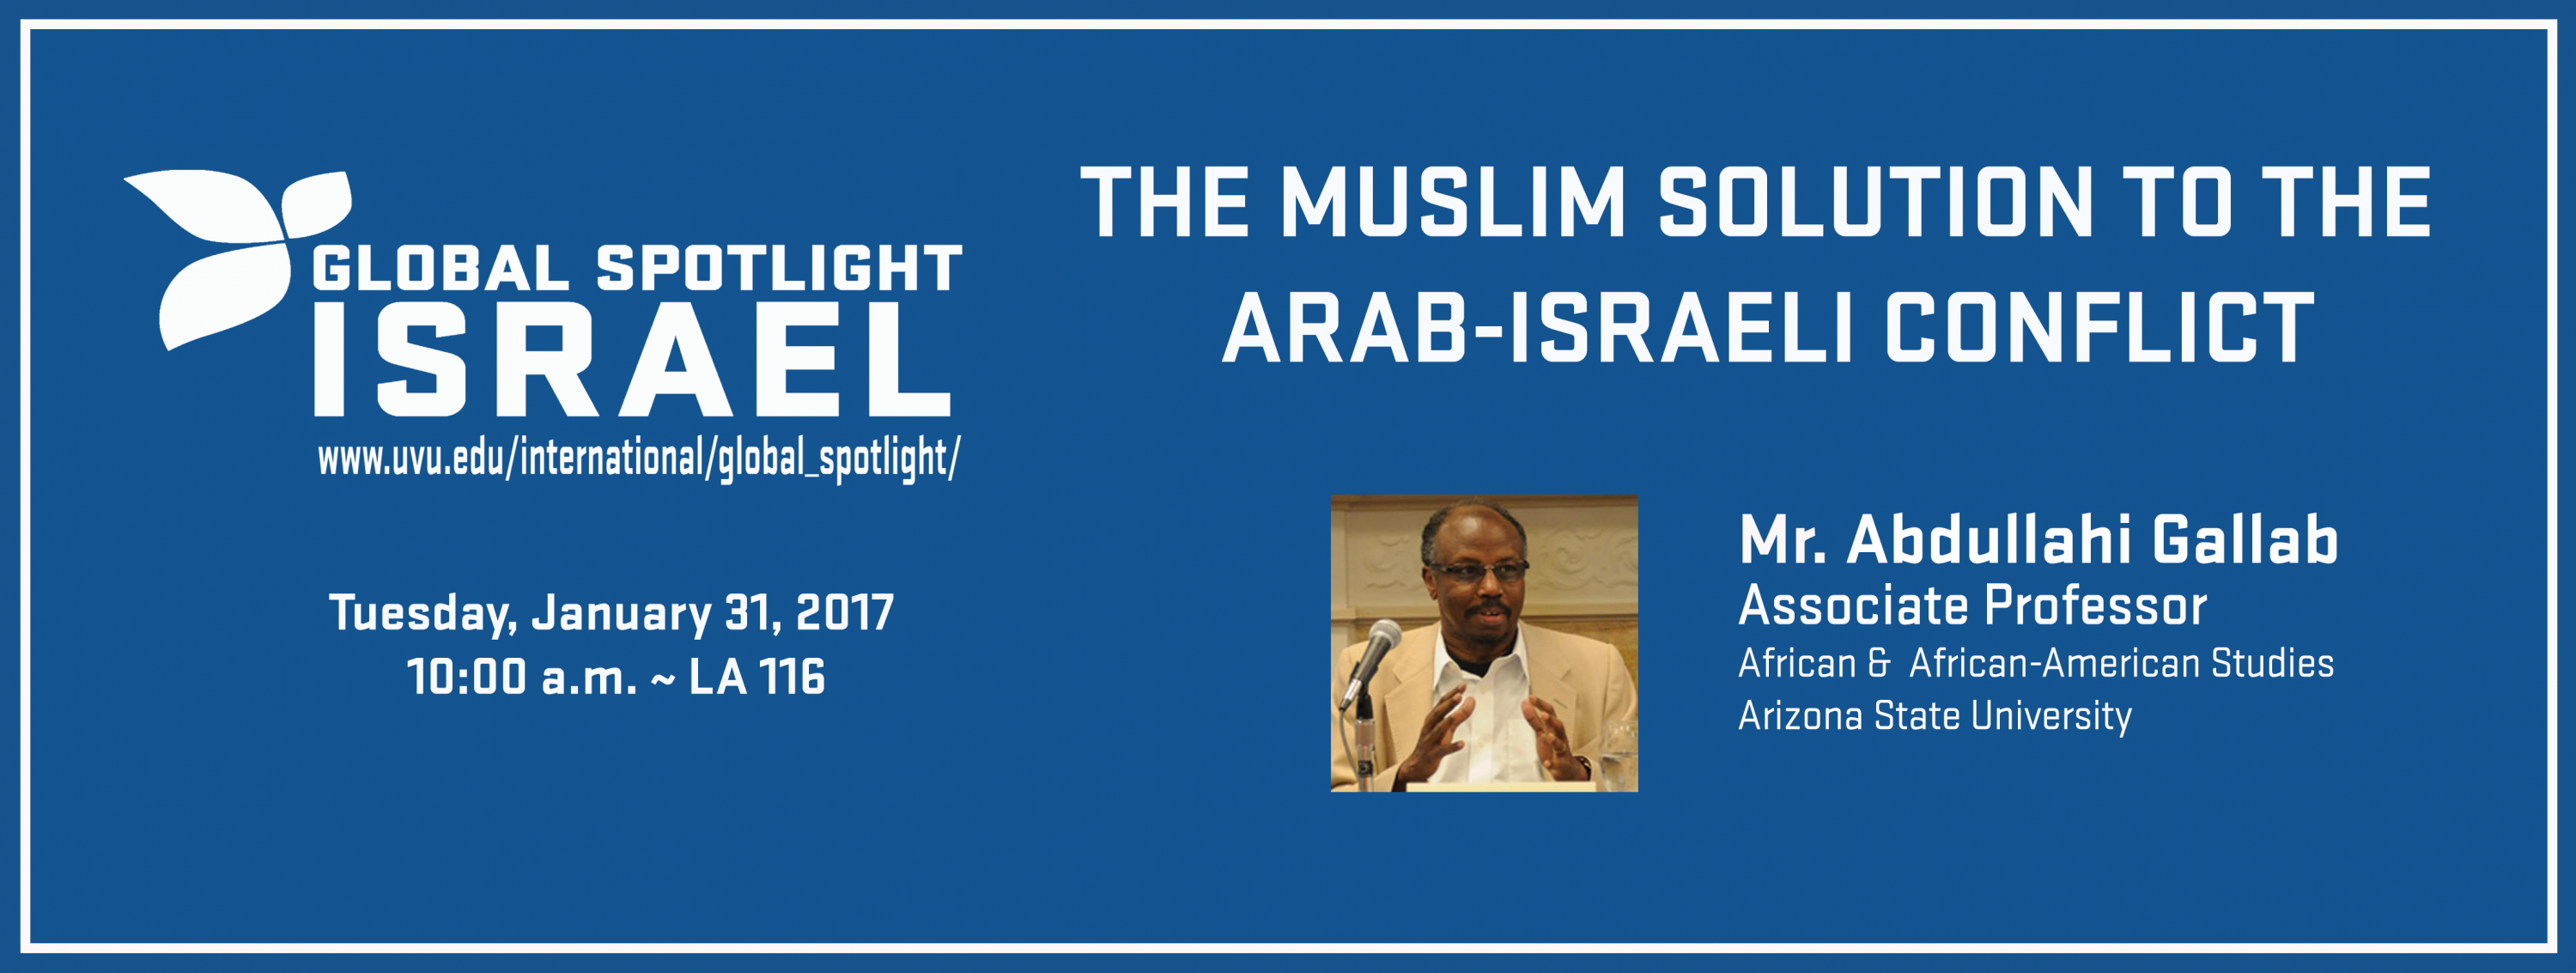 DR. ABDULLAHI GALLAB: THE MUSLIM SOLUTION TO THE ARAB - ISRAELI CONFLICT